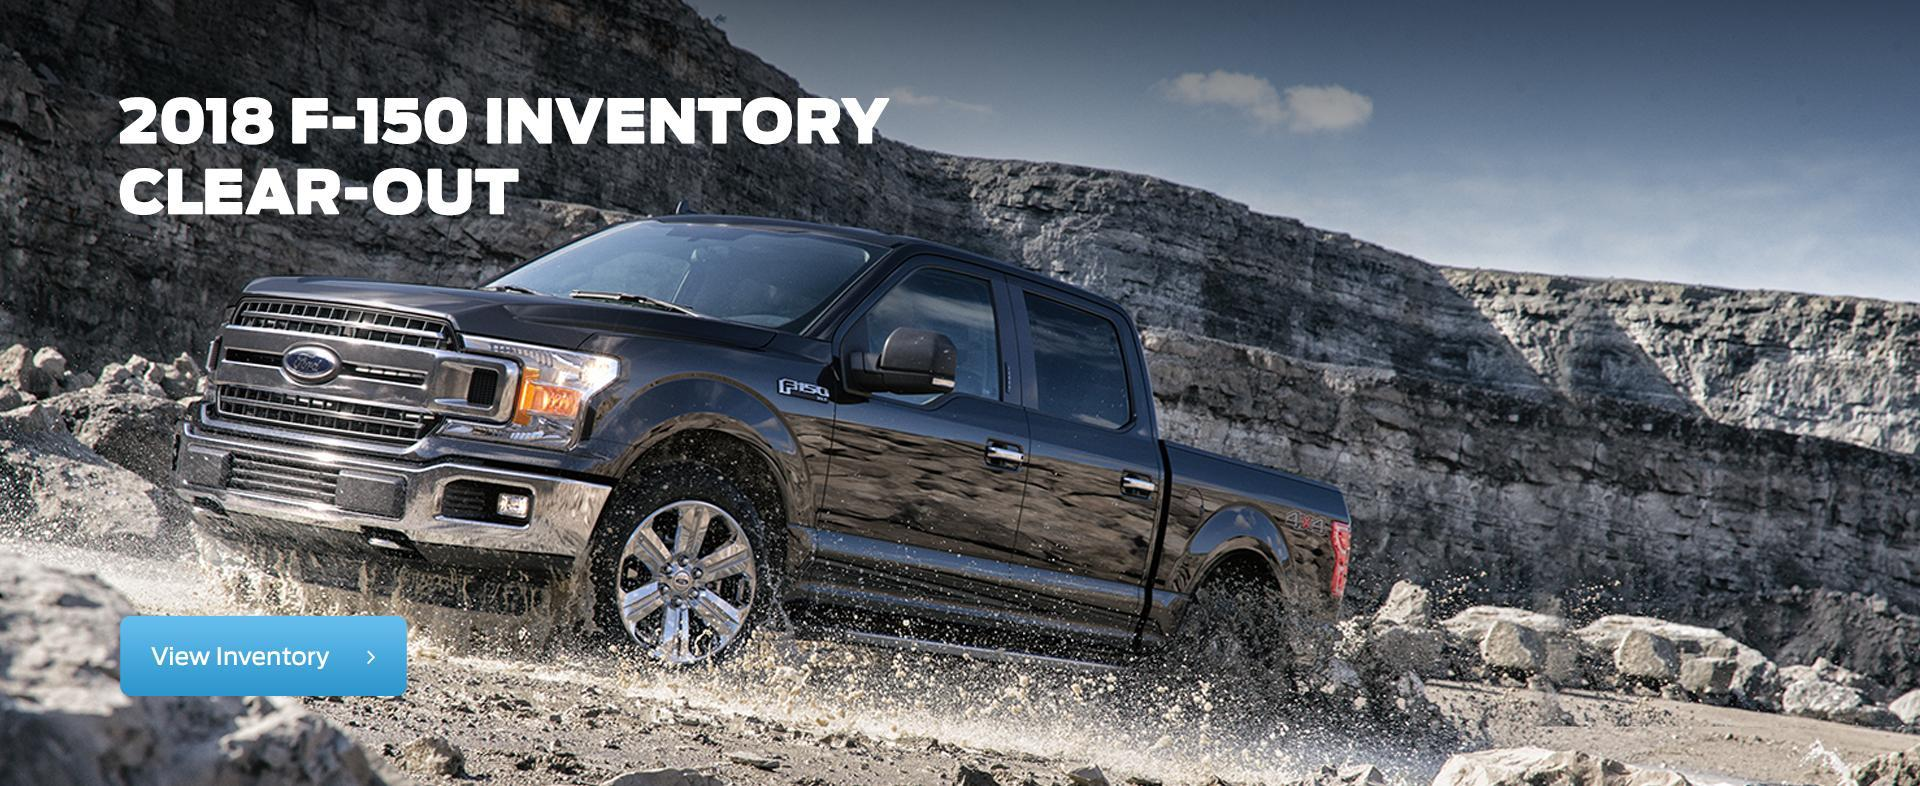 Ford Home 2018 F-150